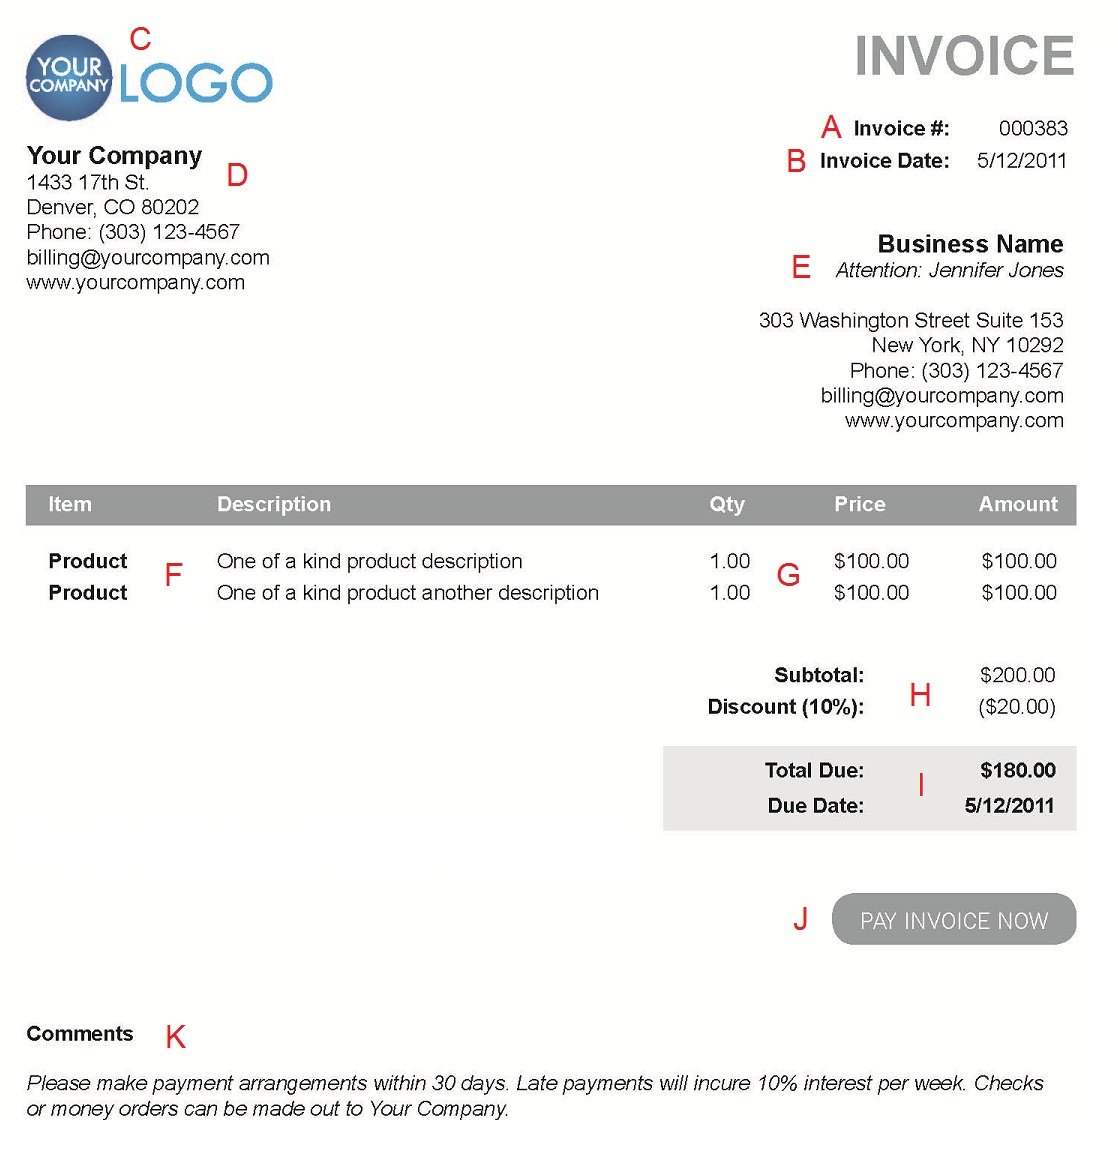 Ultrablogus  Mesmerizing The  Different Sections Of An Electronic Payment Invoice With Hot A  With Cute Sliq Invoicing Plus Also Free Online Invoice System In Addition How To Raise An Invoice And Invoice Discounting Advantages And Disadvantages As Well As Invoice Template Australia Free Additionally Freelance Invoicing Software From Paysimplecom With Ultrablogus  Hot The  Different Sections Of An Electronic Payment Invoice With Cute A  And Mesmerizing Sliq Invoicing Plus Also Free Online Invoice System In Addition How To Raise An Invoice From Paysimplecom